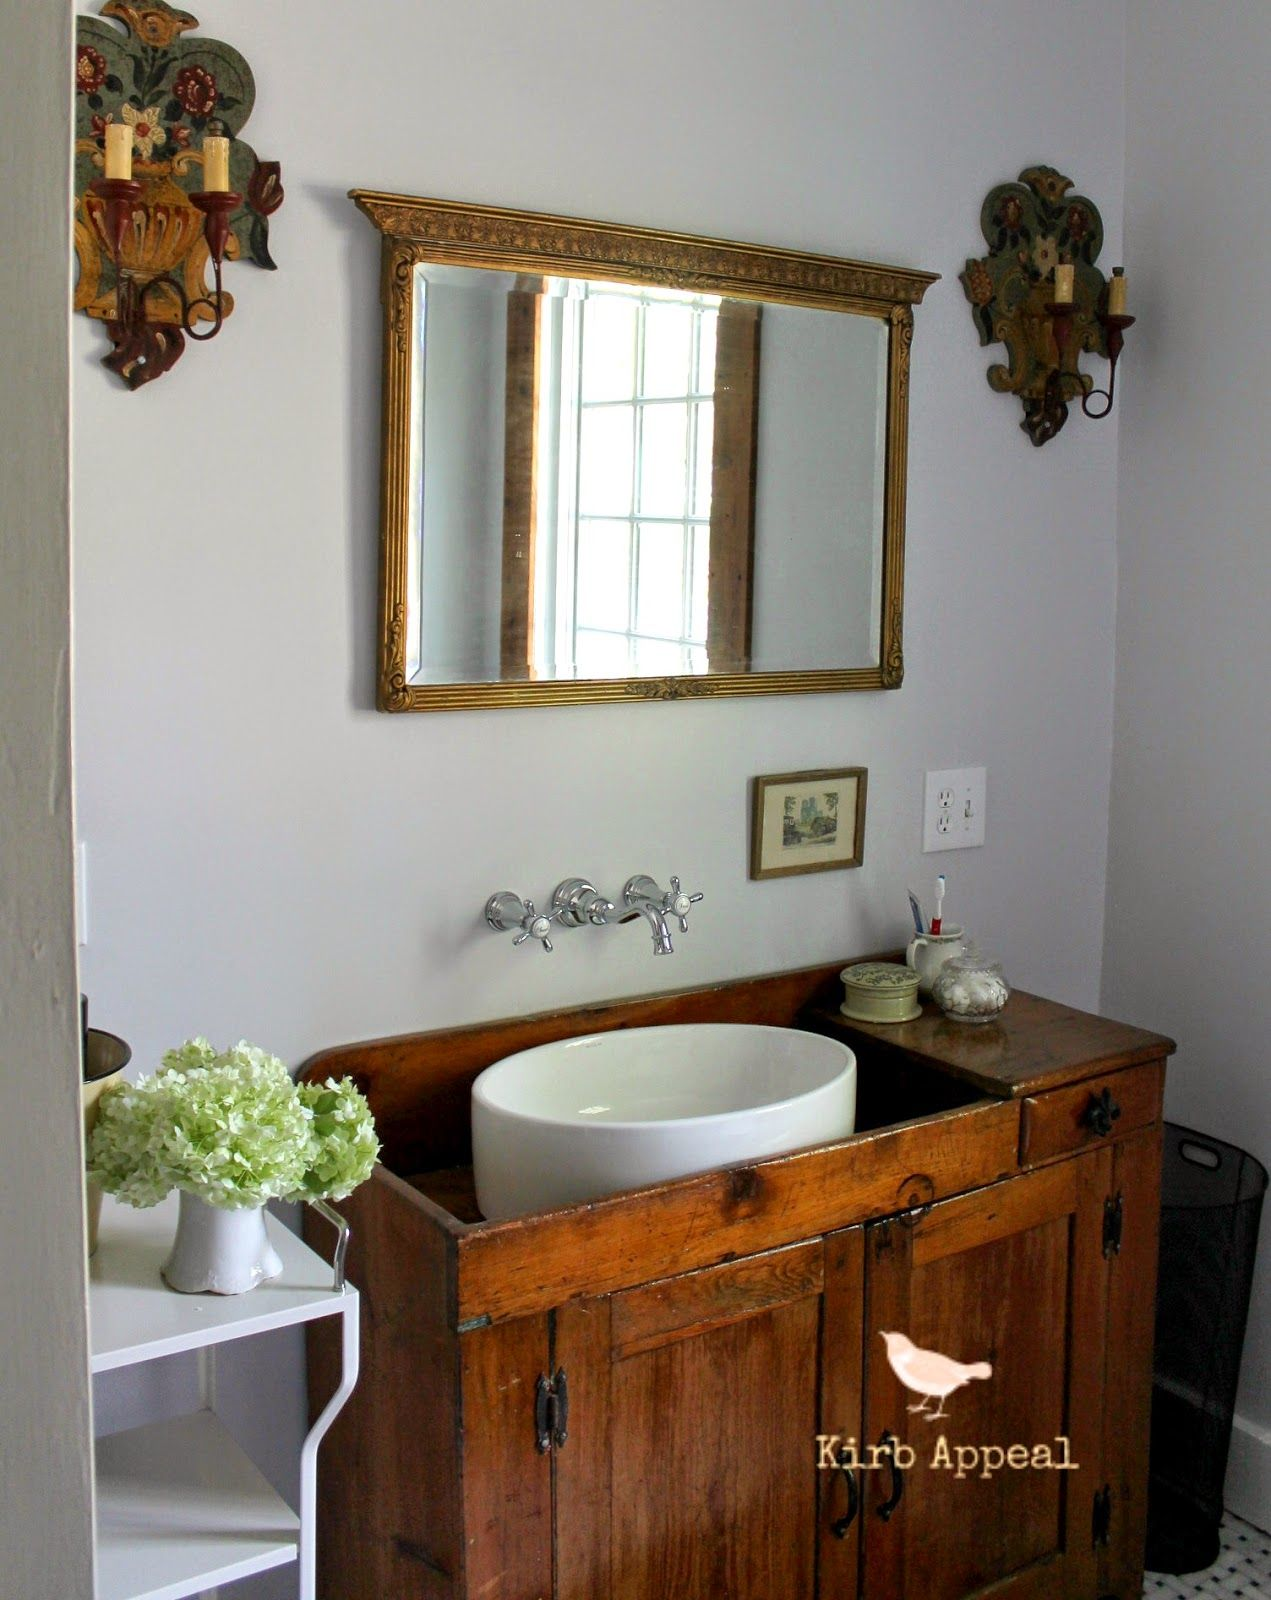 Kirb Appeal Bathroom Reveal Two Down One To Go Guest Bathroom Renovation Dry Sink Bathroom Inspiration